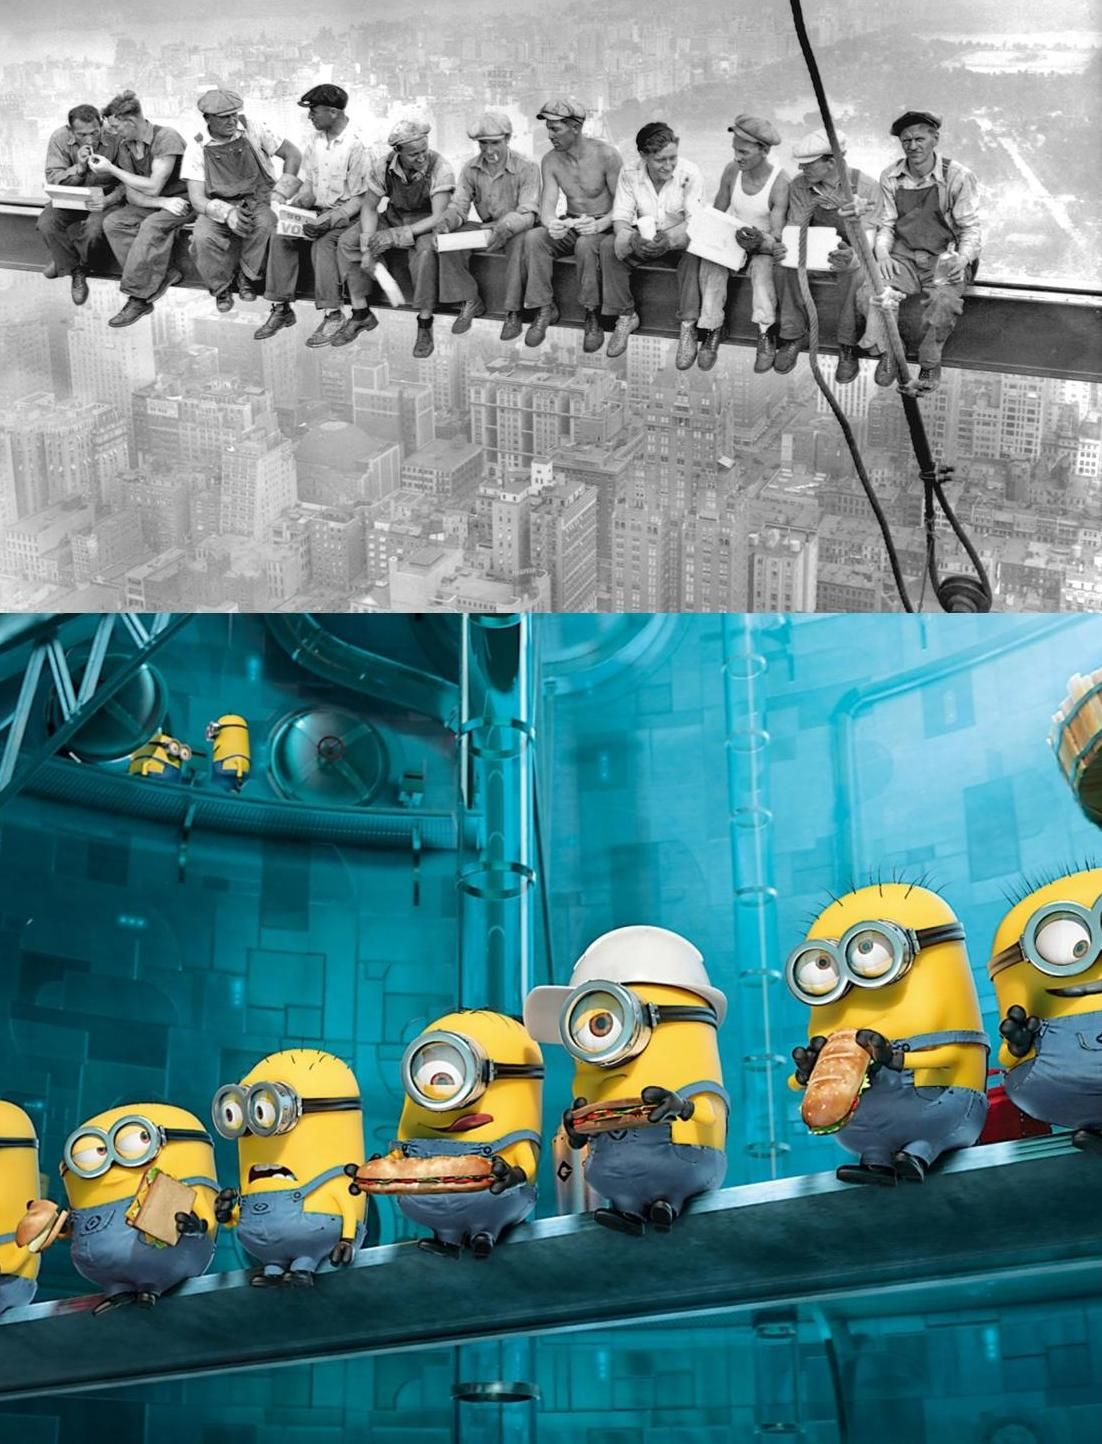 Does time change anything? Workplace safety, Minions